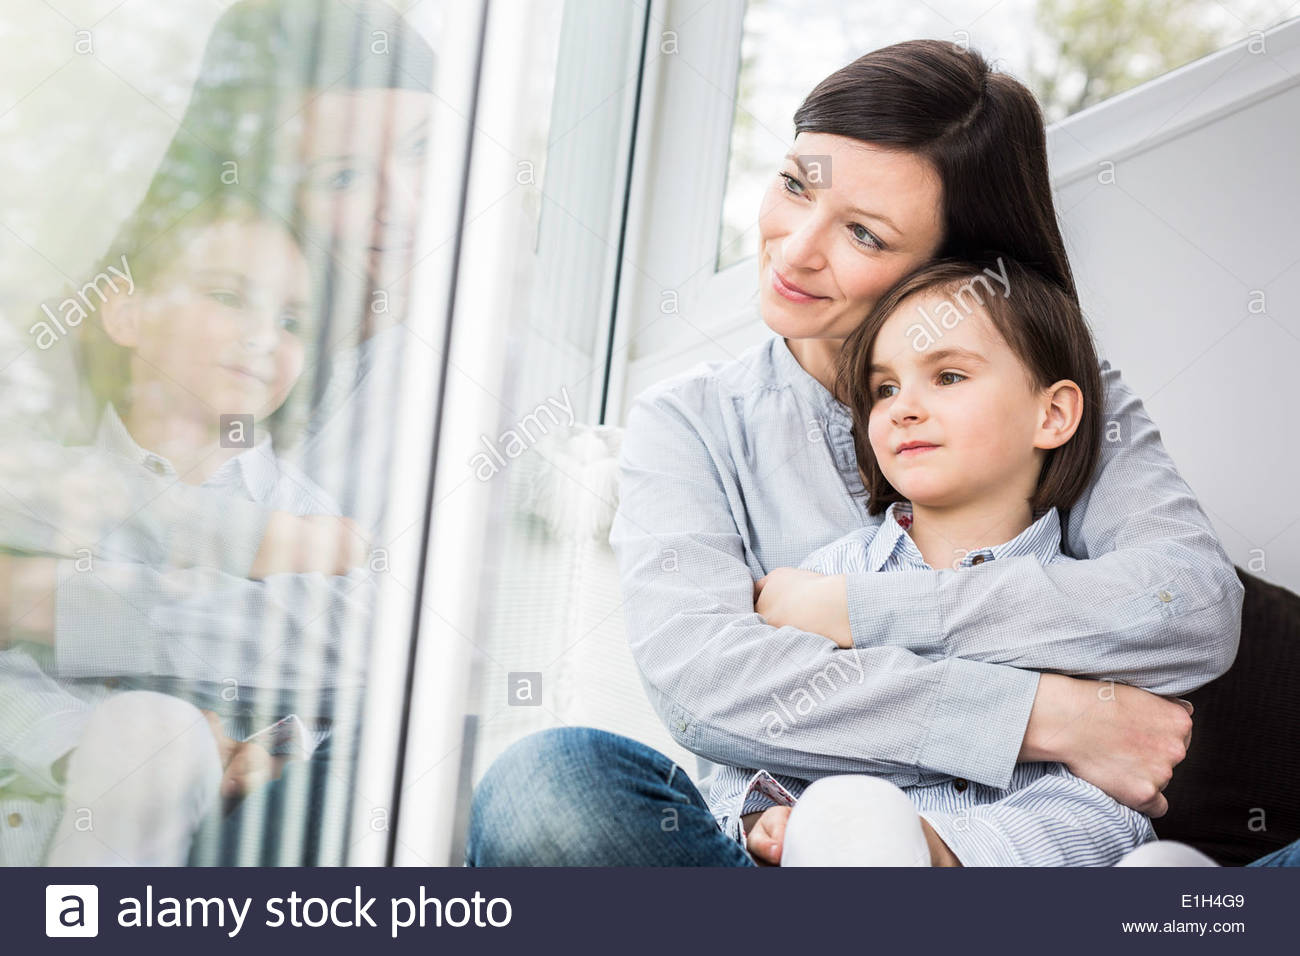 Mother and daughter hugging by window - Stock Image